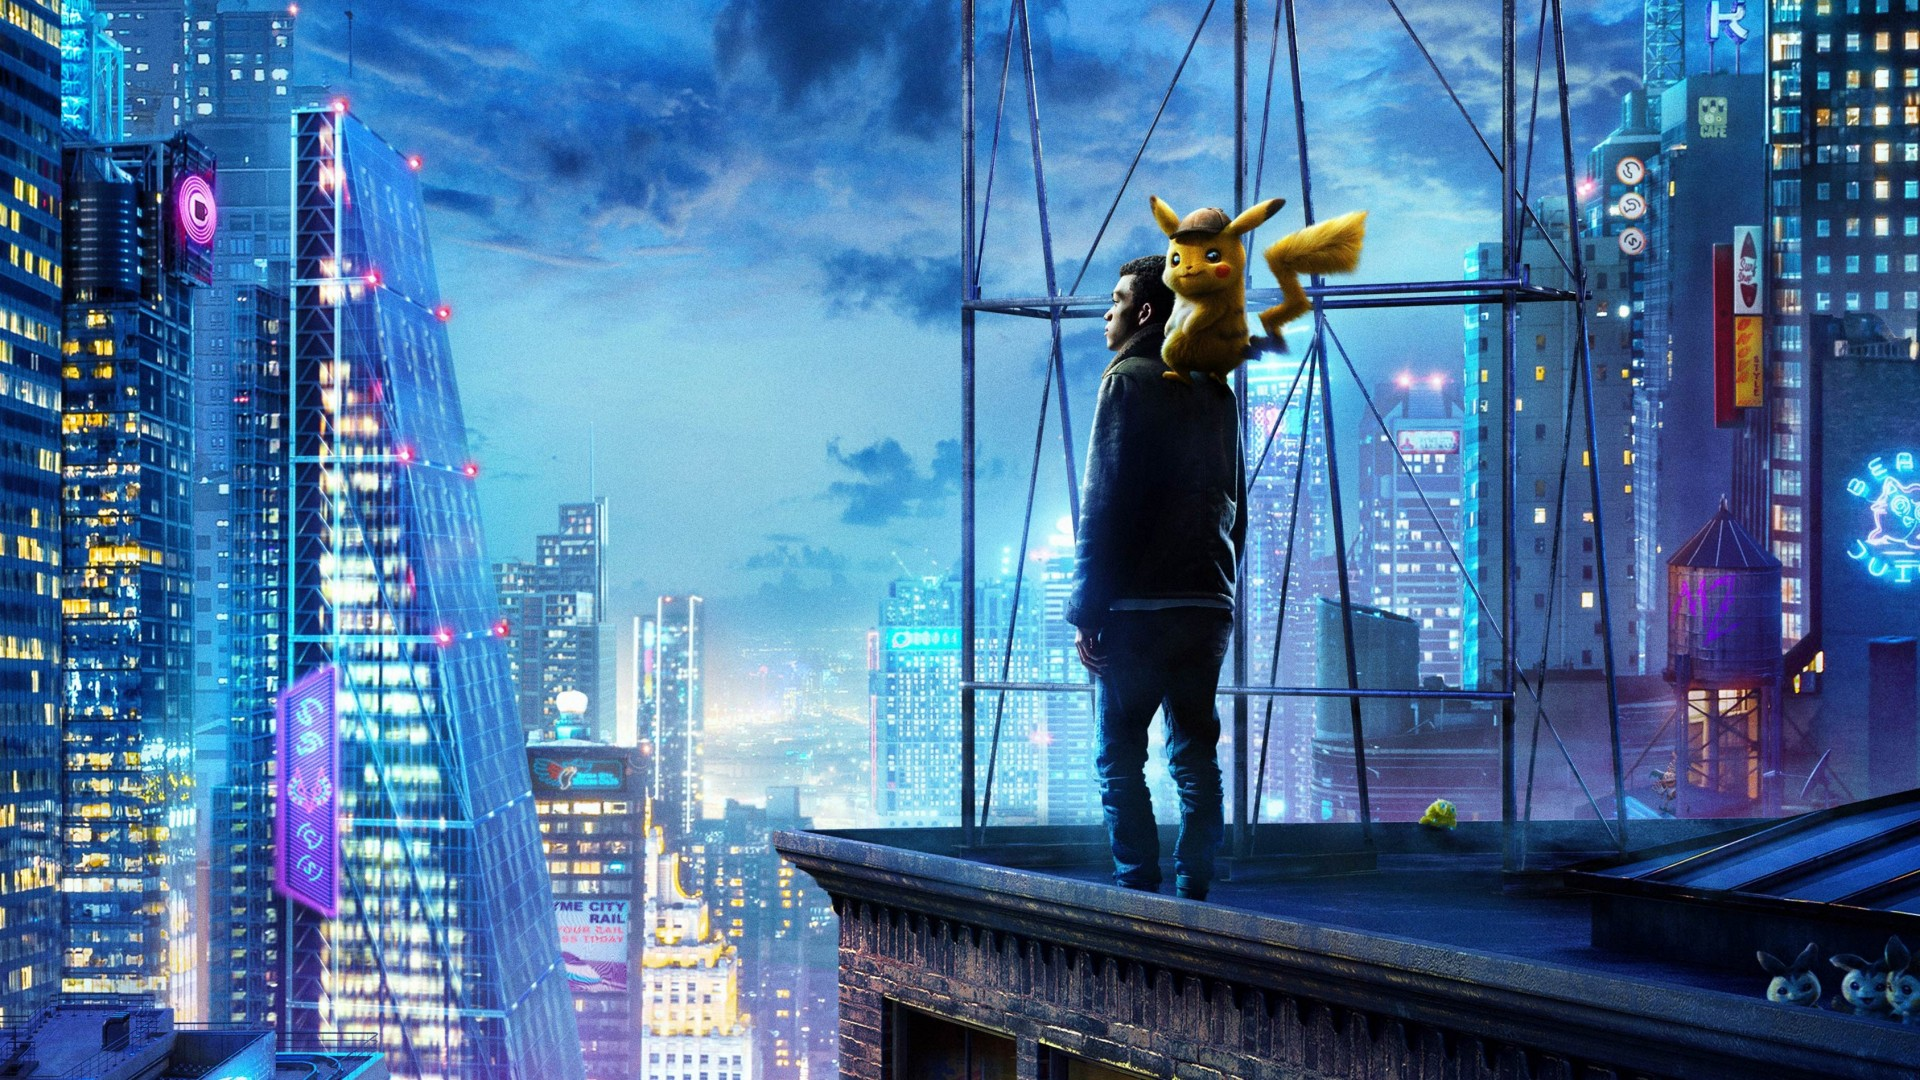 Hd Wallpapers For Windows 7 Download Pok 201 Mon Detective Pikachu Wallpapers Hd Wallpapers Id